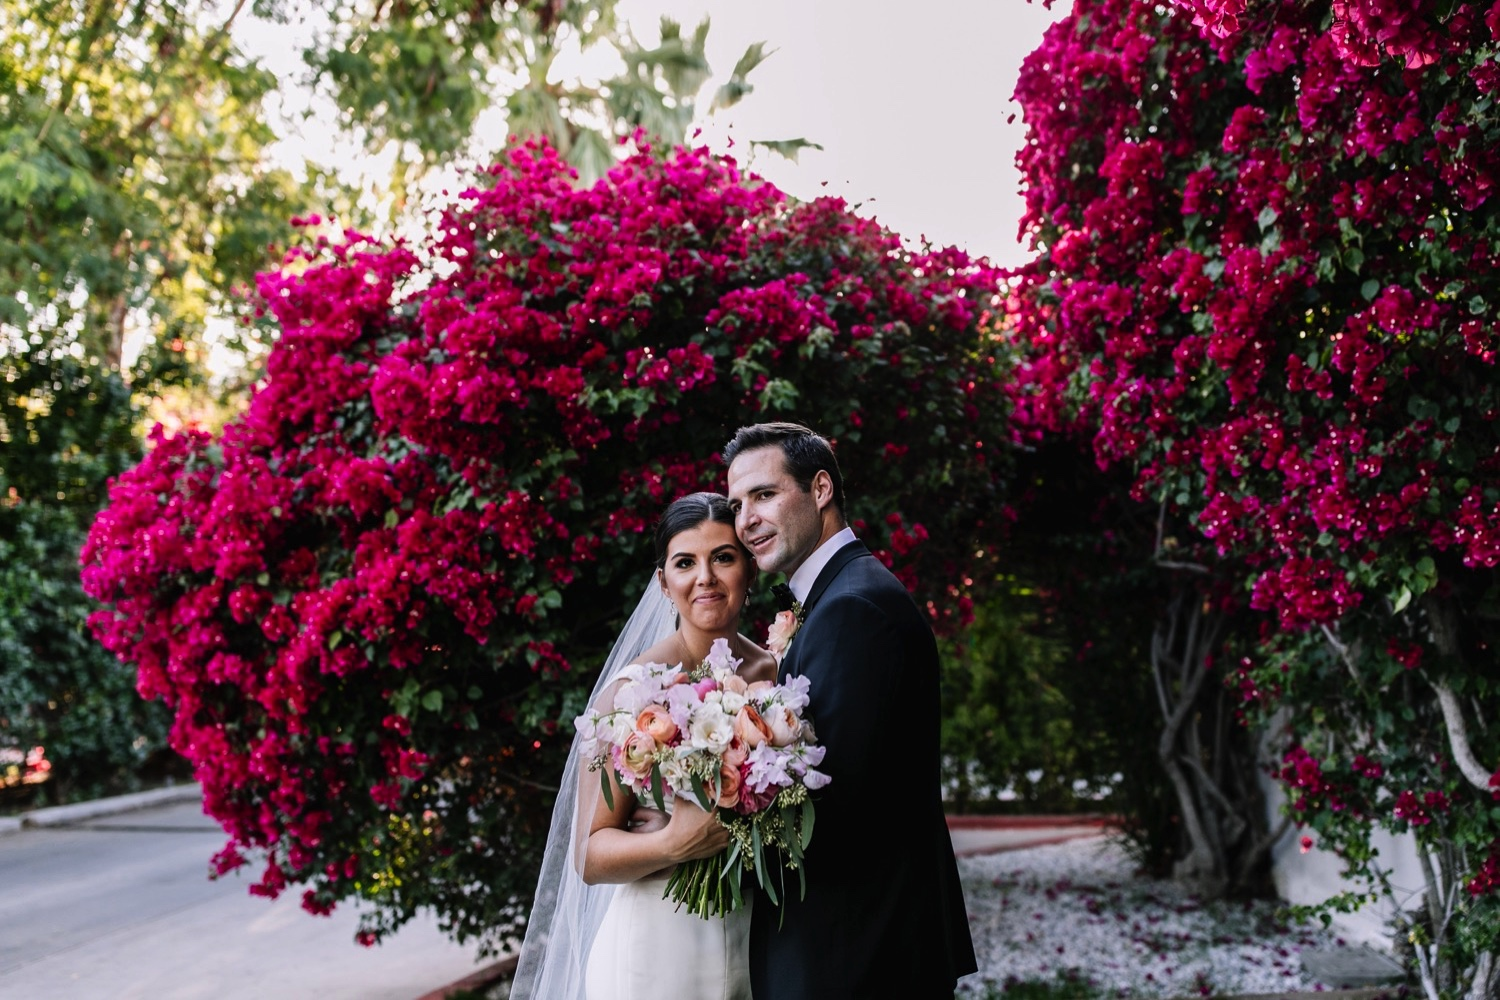 Wedding Photography Palm Springs